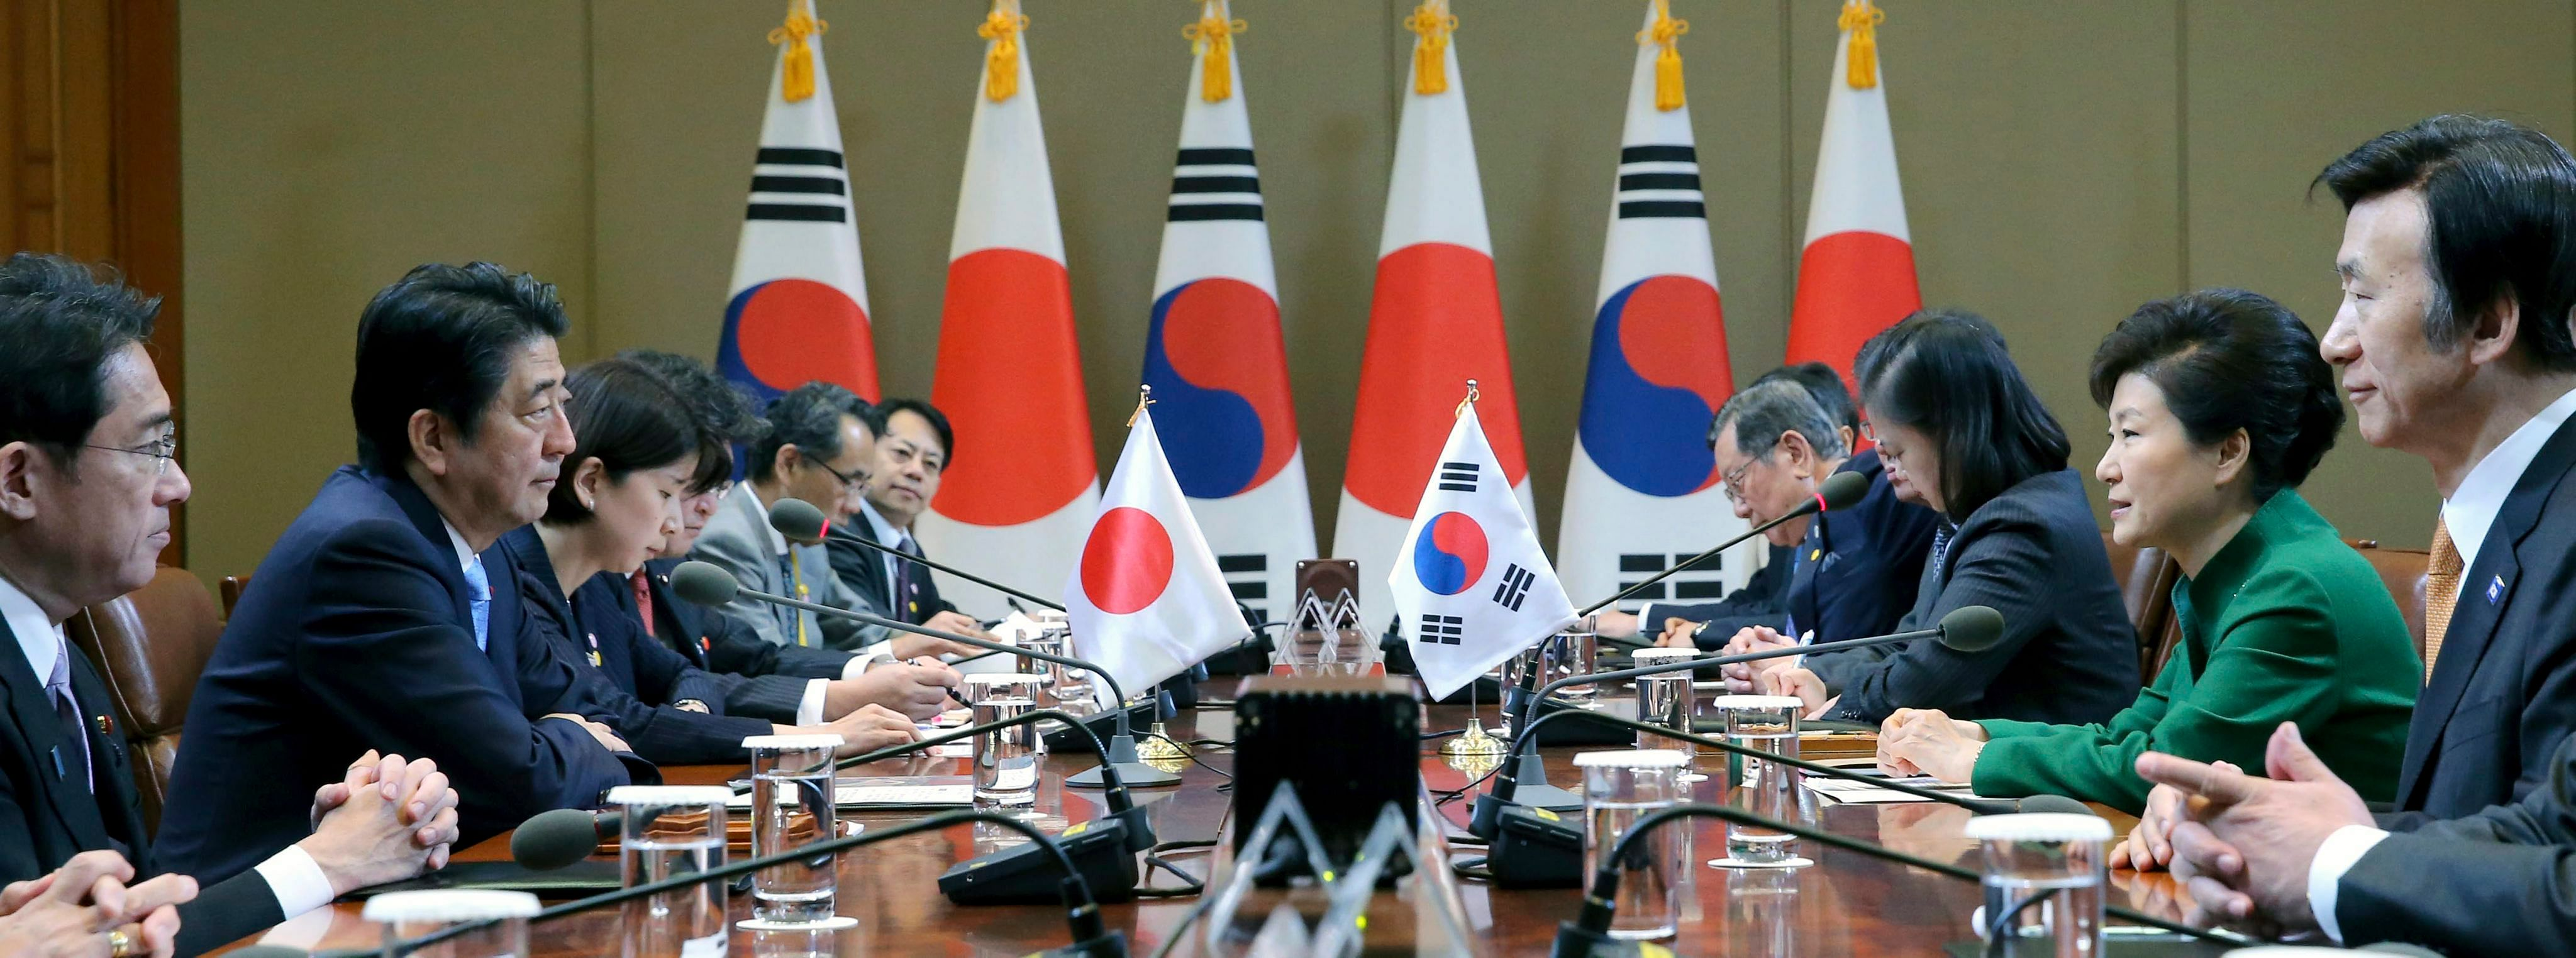 South Korean President Park Geun Hye (second from right) and Japanese Prime Minister Shinzo Abe (left) holding summit talks at the presidential office in Seoul yesterday. The two leaders pledged to accelerate negotiations in regional trade agreements